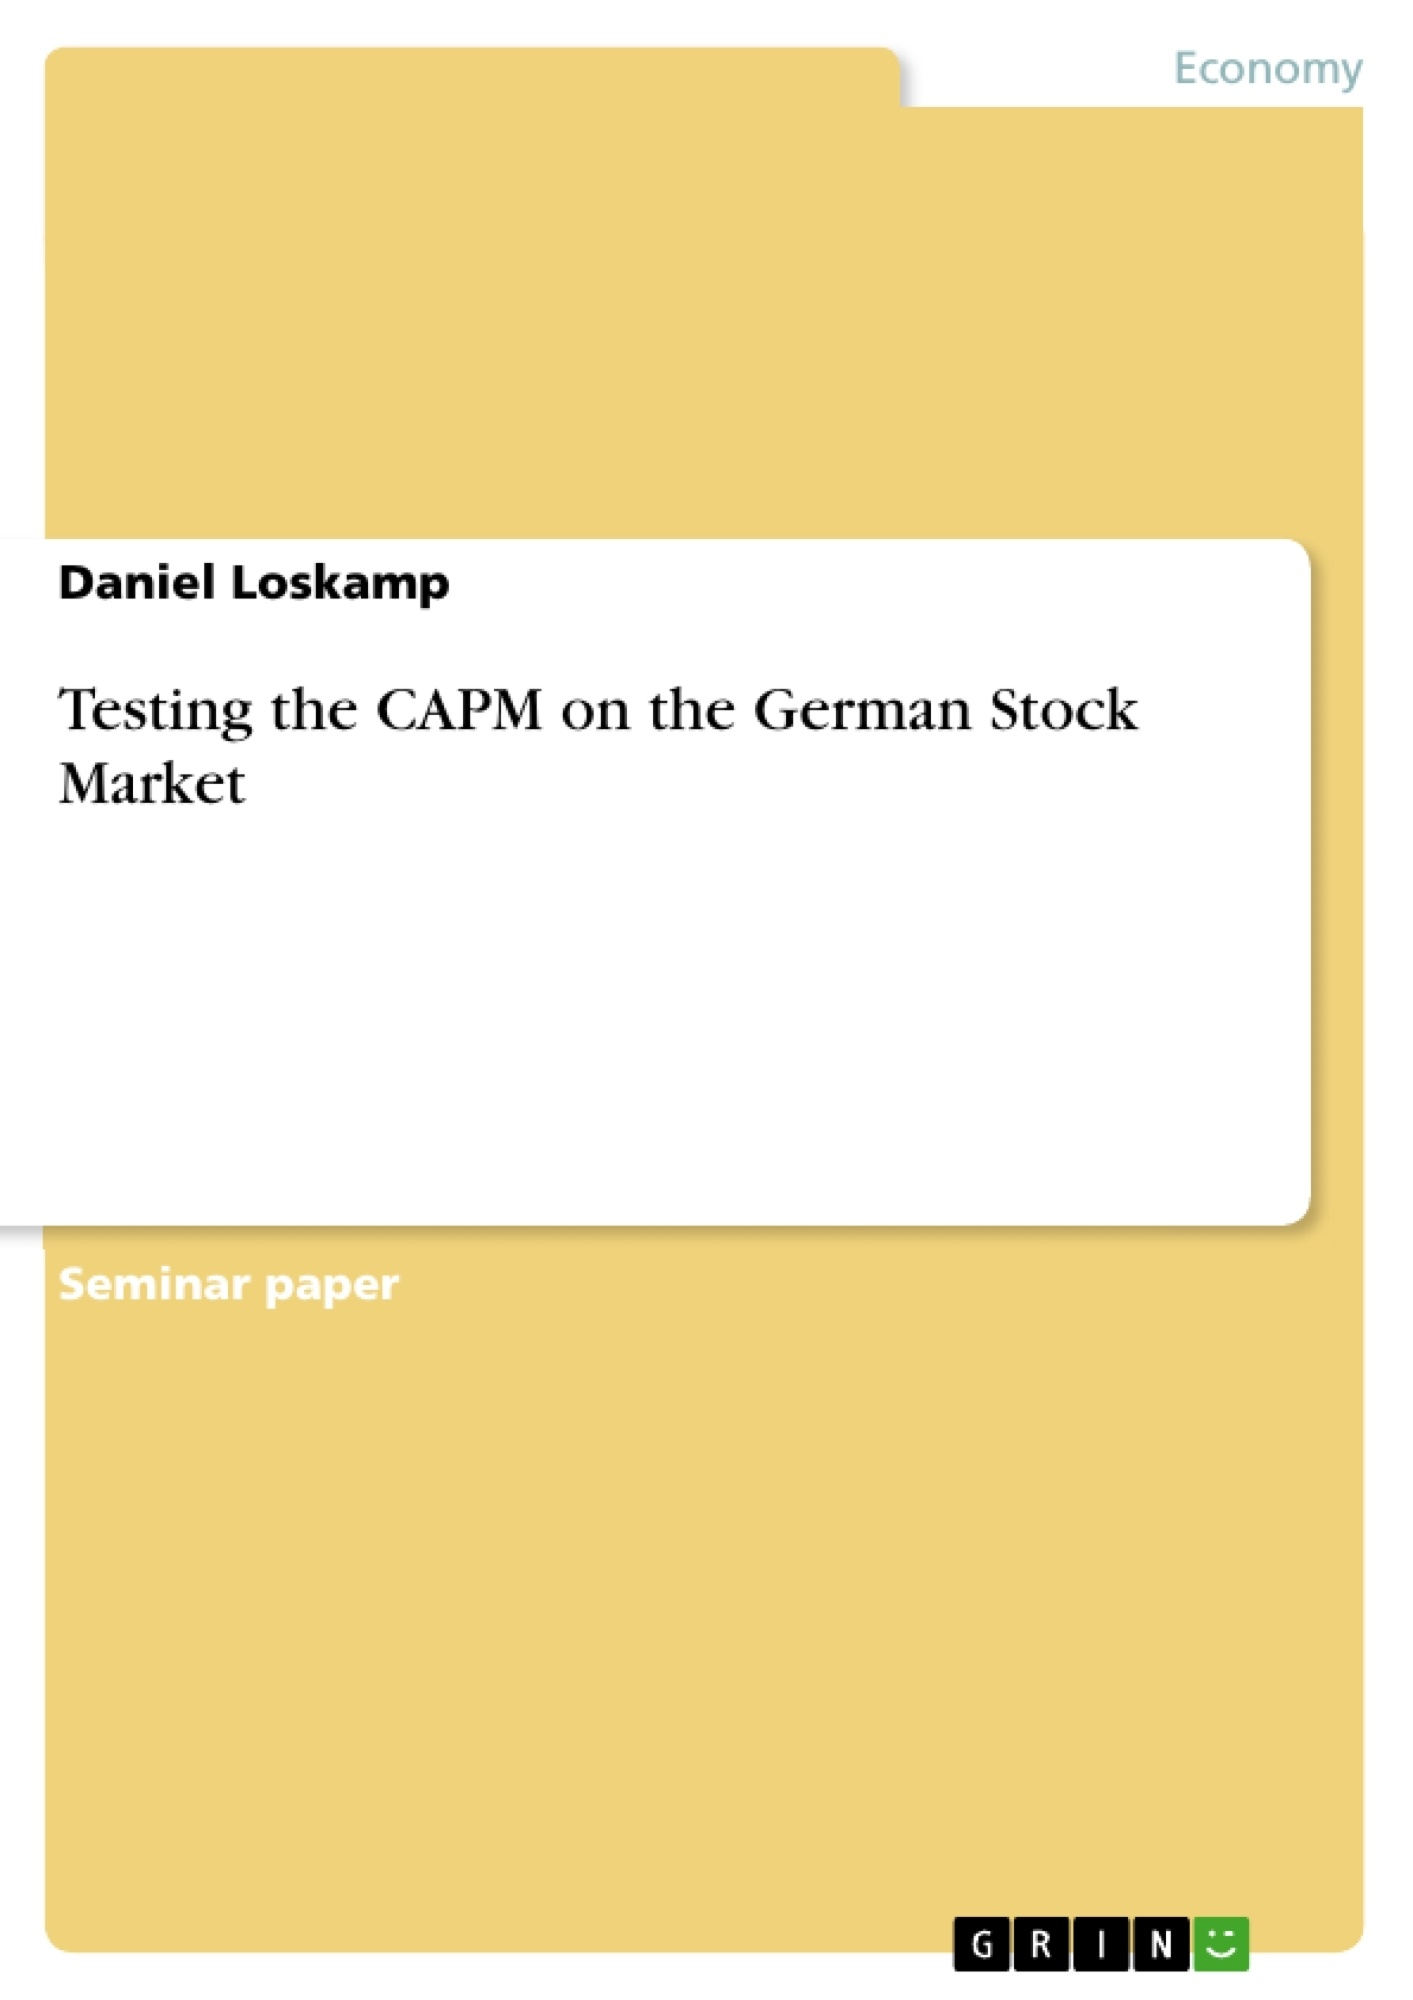 Title: Testing the CAPM on the German Stock Market